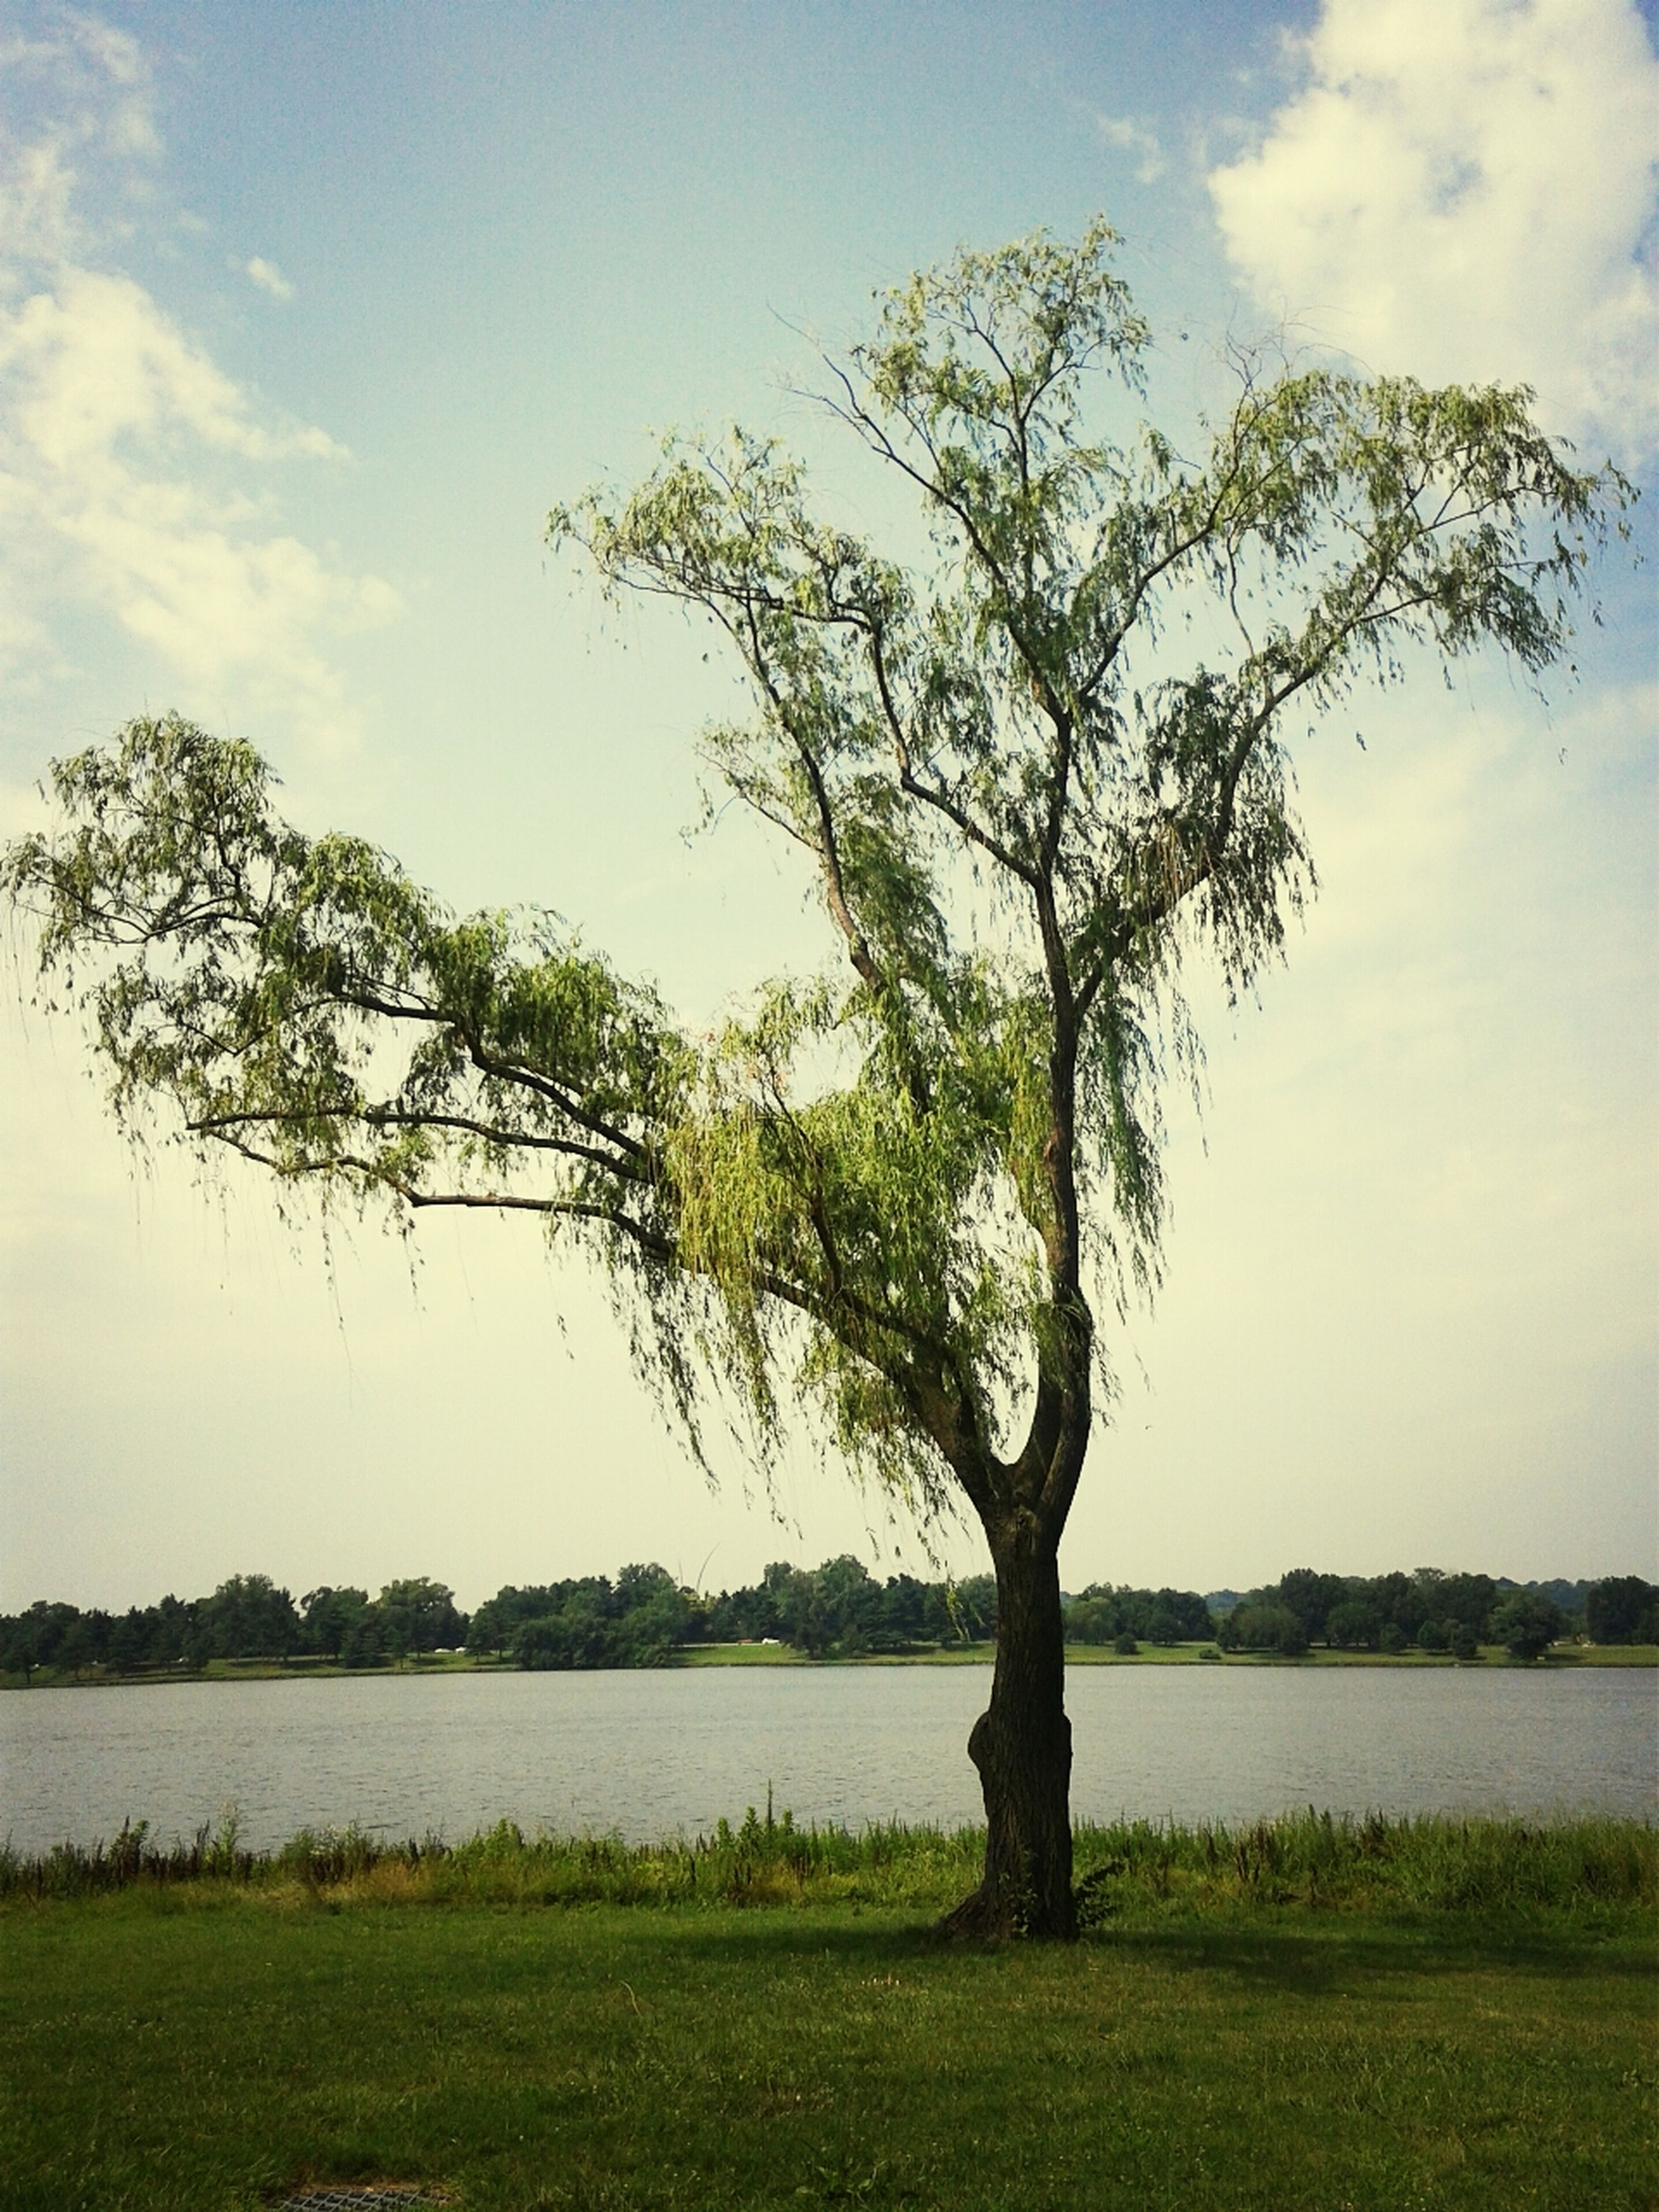 grass, tree, tranquility, tranquil scene, sky, scenics, beauty in nature, nature, water, landscape, field, bare tree, branch, lake, tree trunk, grassy, growth, green color, single tree, idyllic